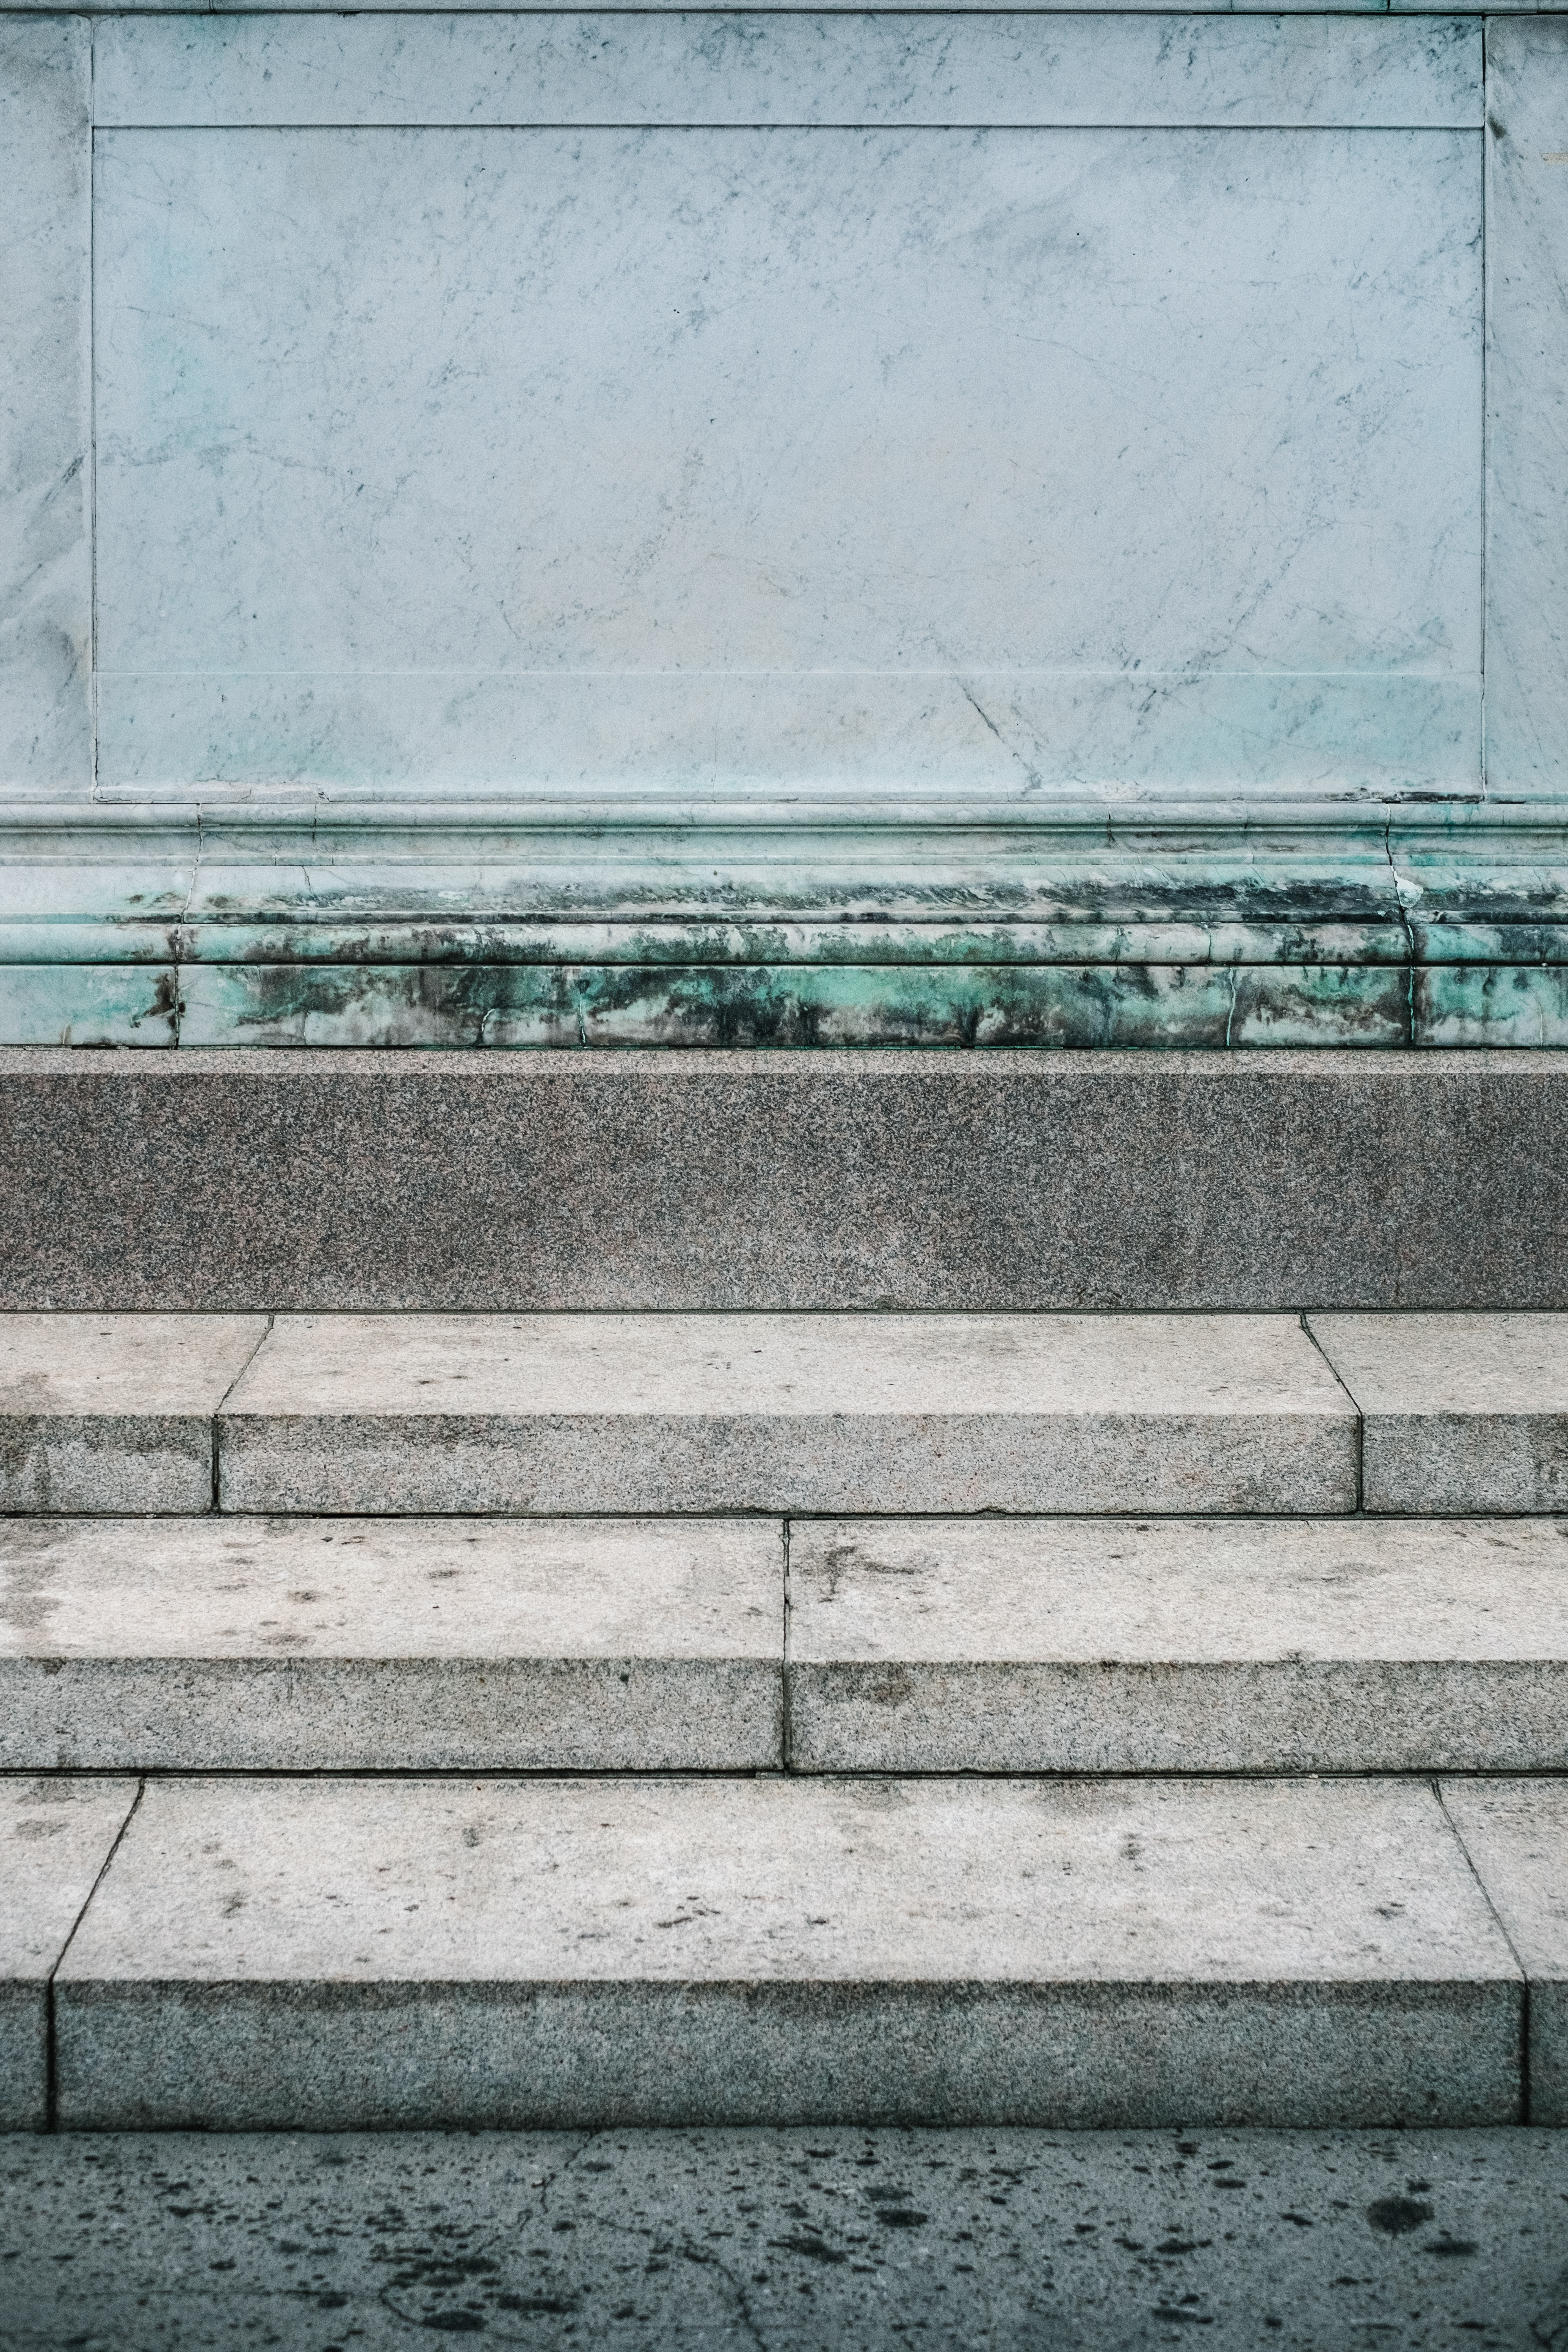 marble trend in architecture